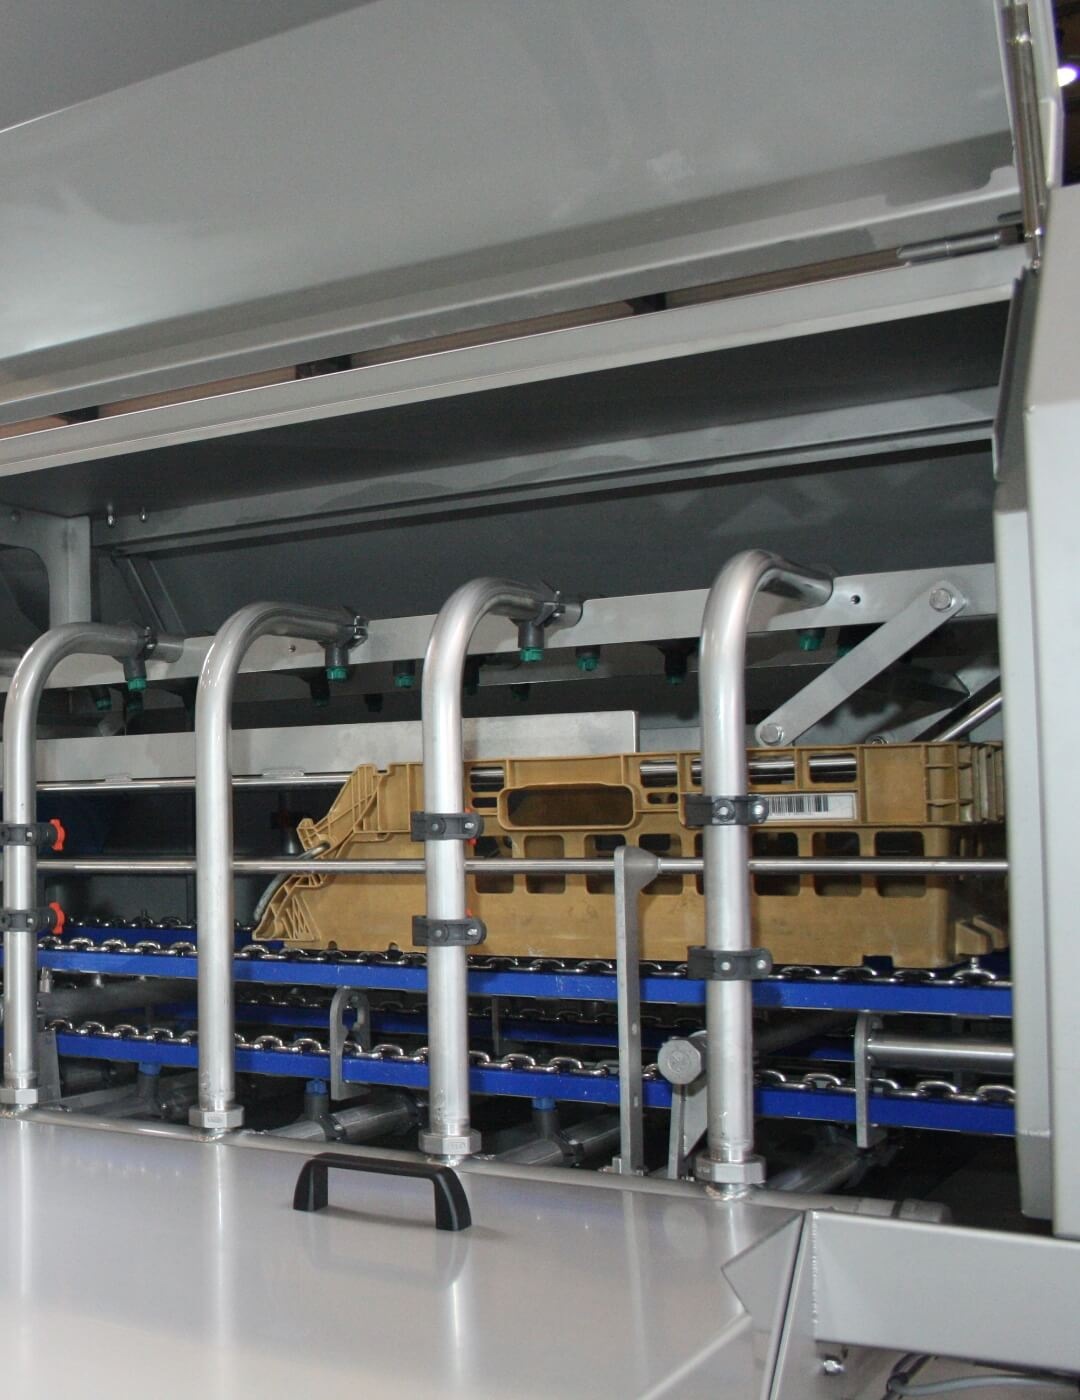 Industrial crate washer for cleaning bread crates